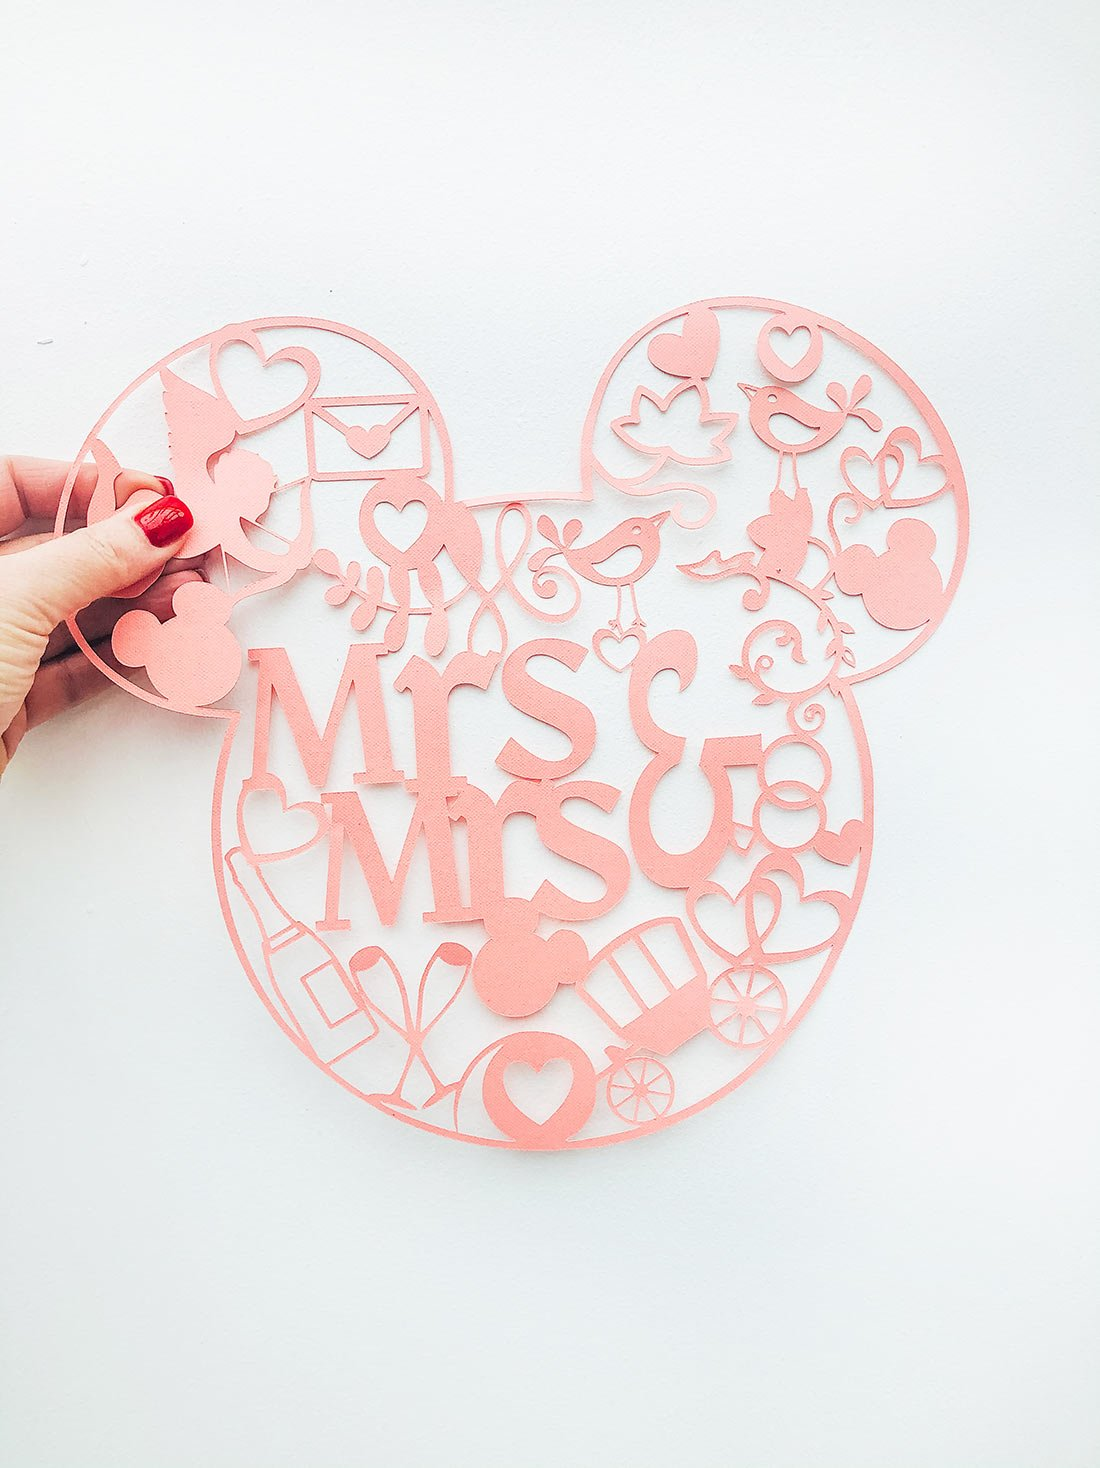 Brides Mickey Mouse Cut File for Wedding Decorations_